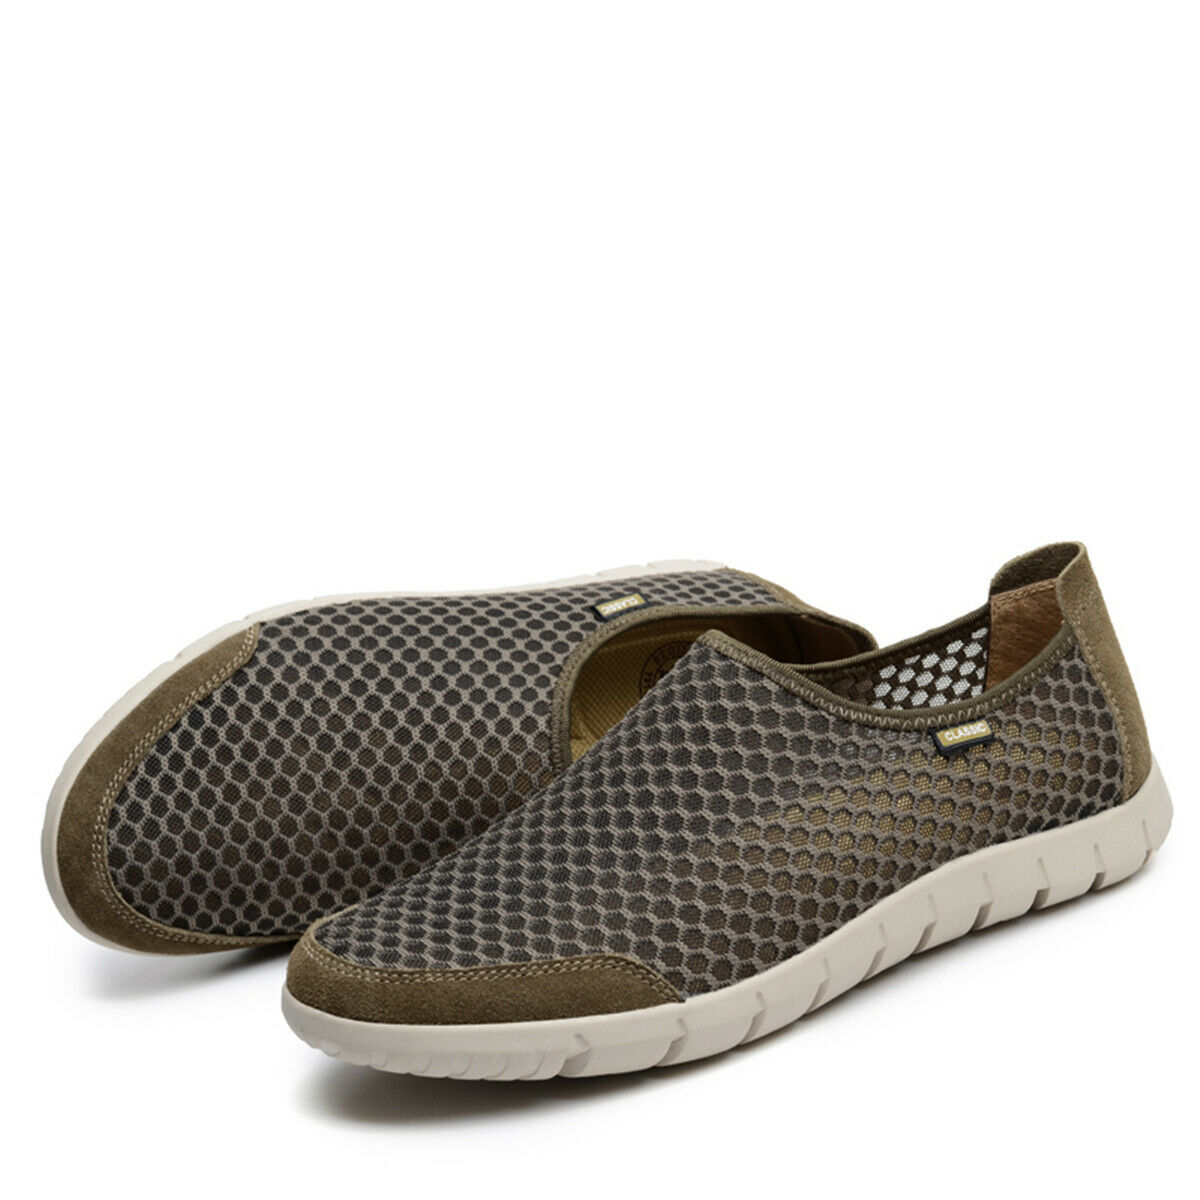 Fashion Outdoor Mens Walking Hole shoes Mesh Loafers Slip On Low Top Sports New